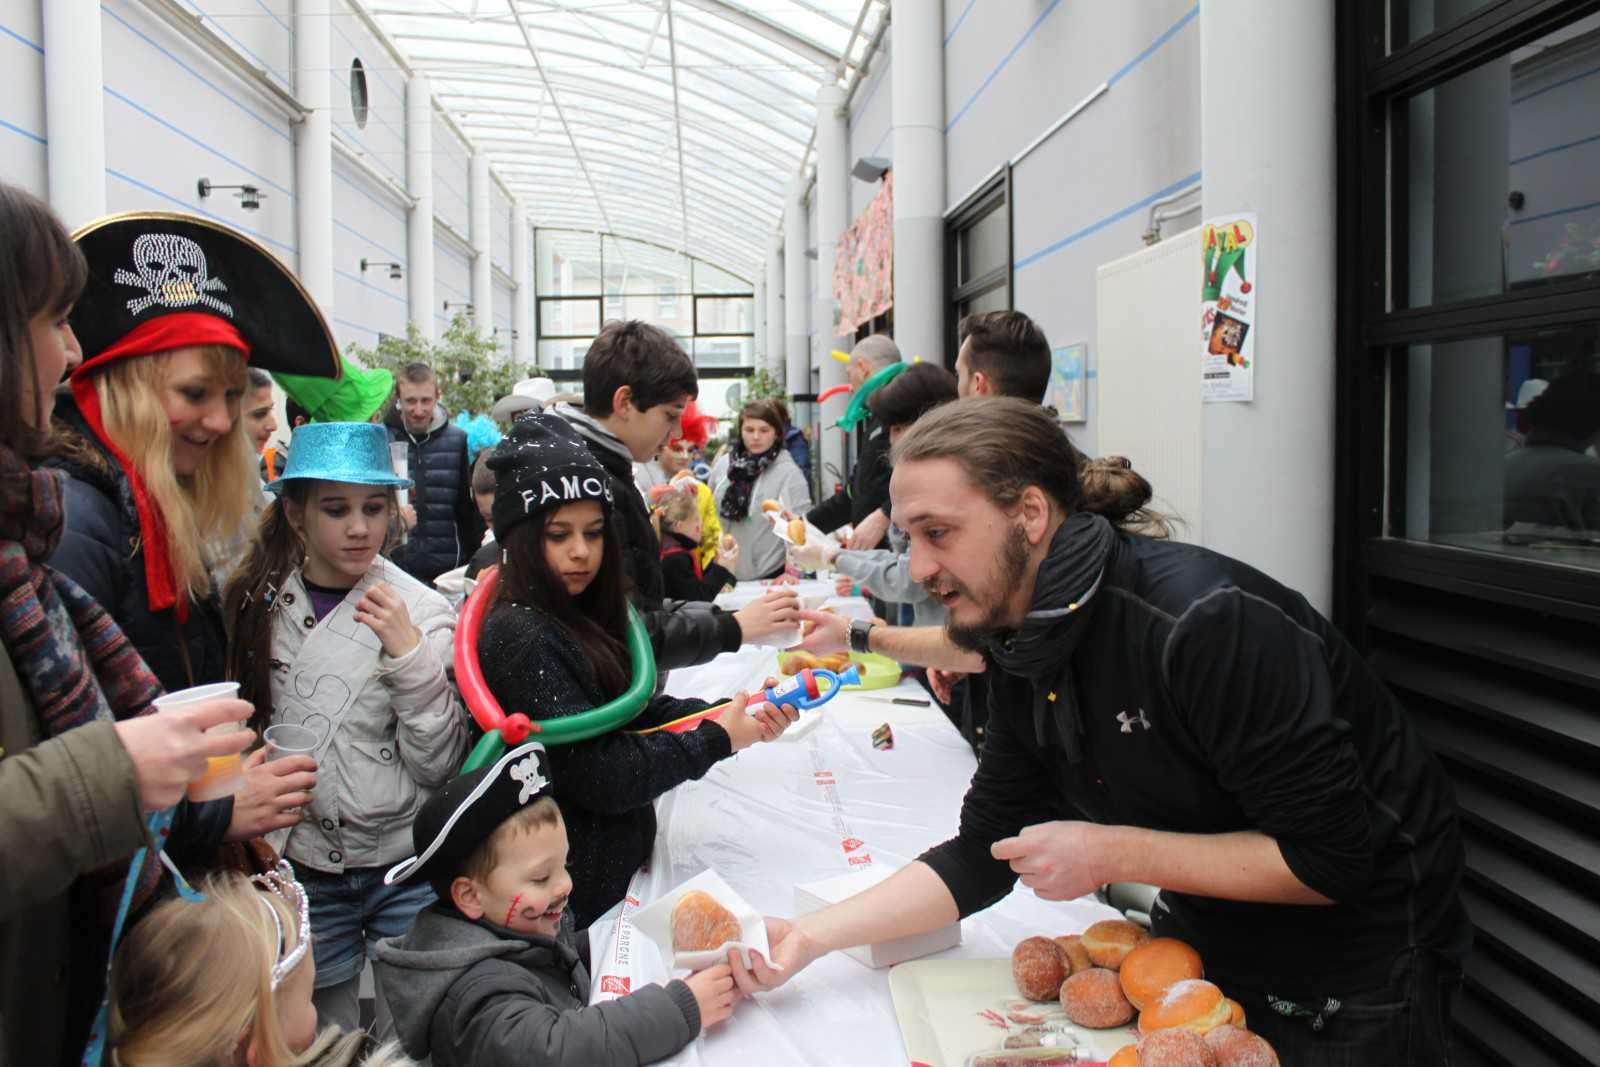 27022015 - Carnaval selection (16)